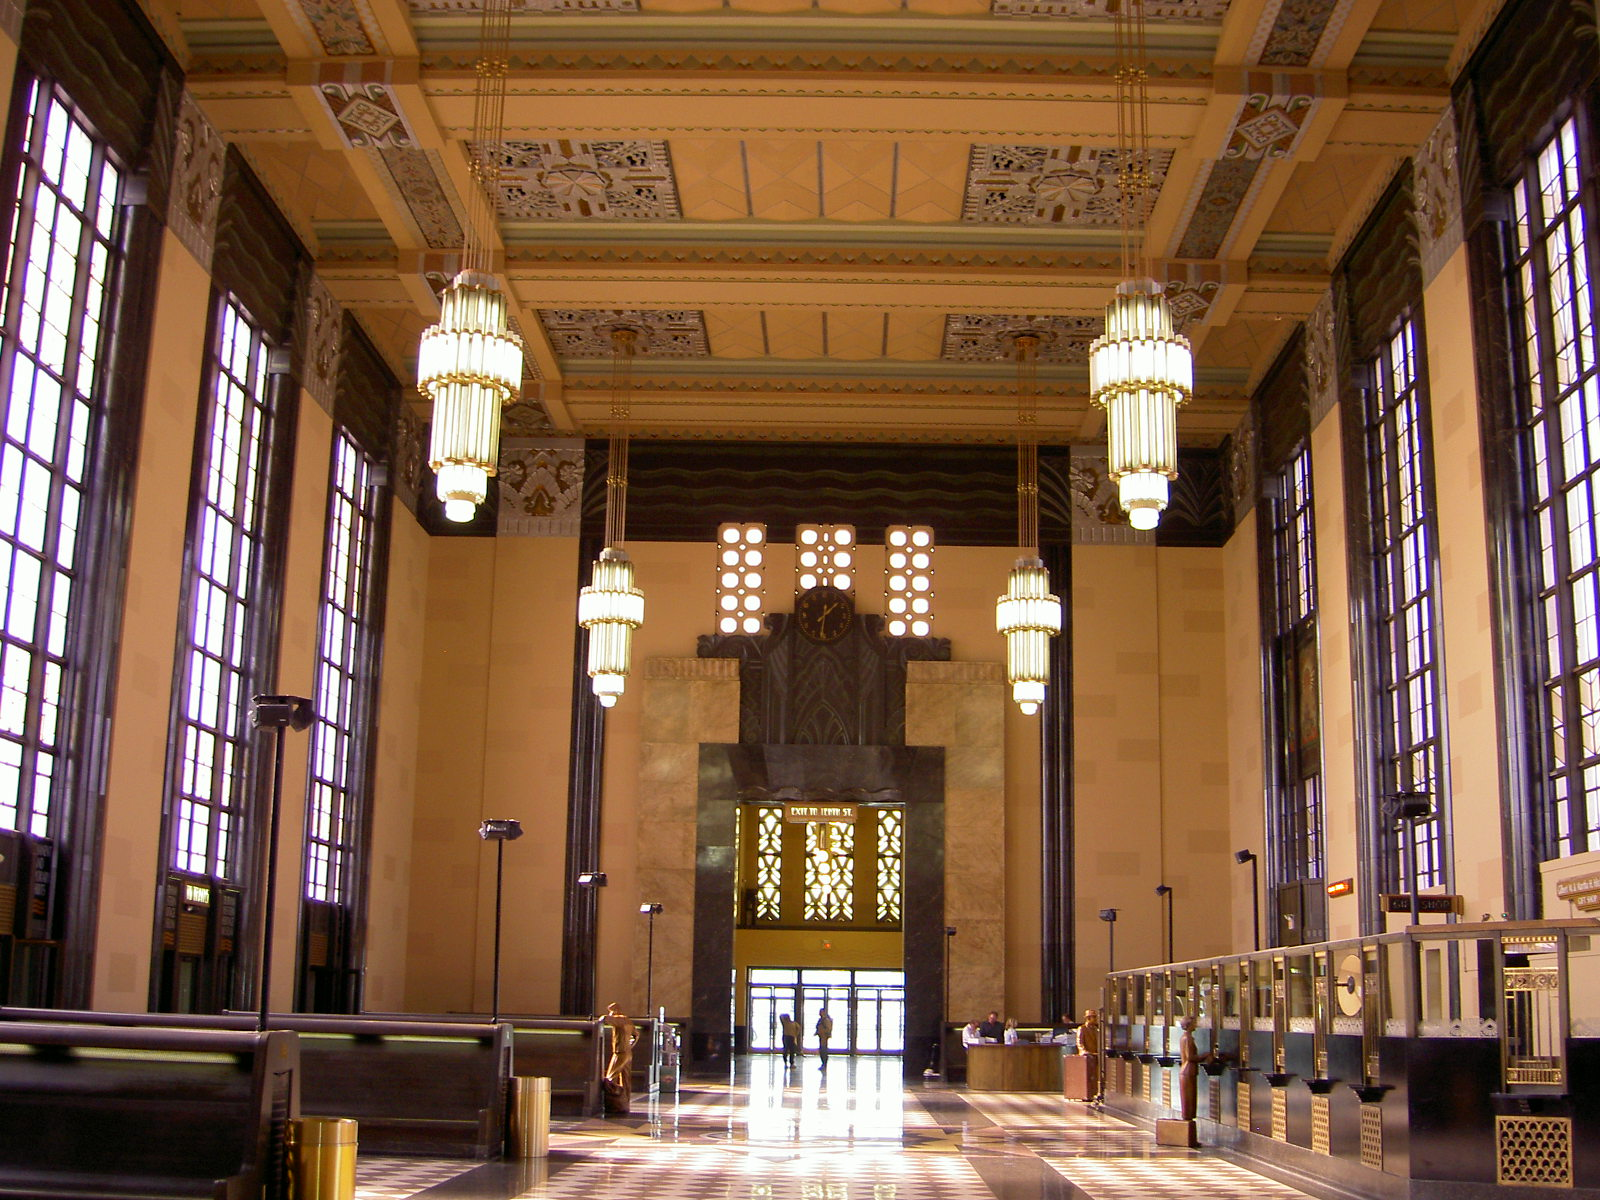 Union station omaha wikipedia for The interior deco